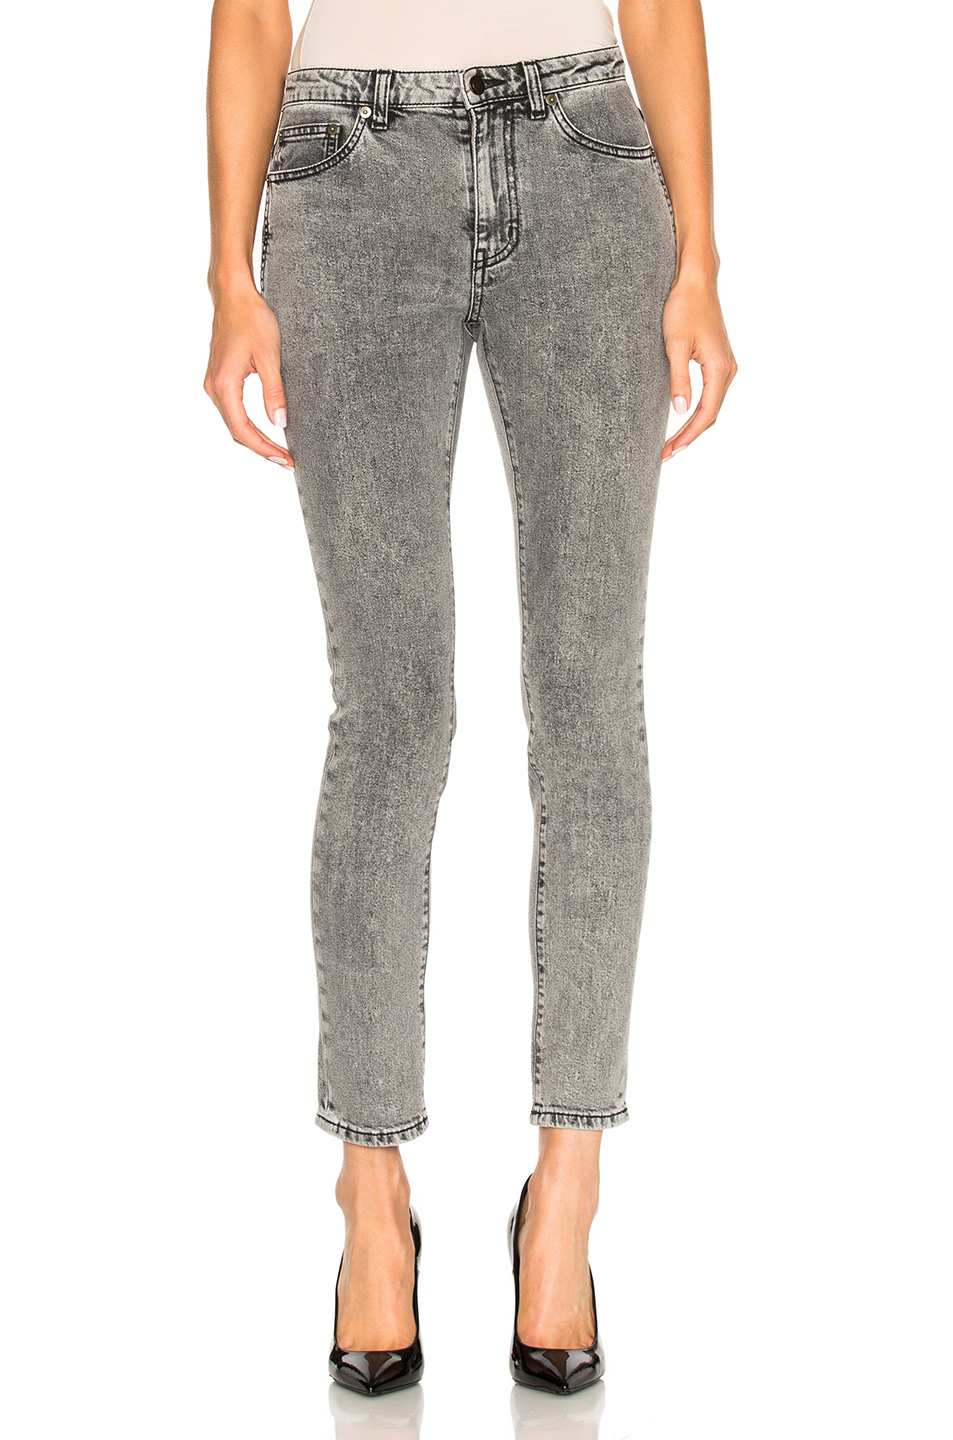 Saint Laurent Cropped Skinny Jeans in Gray